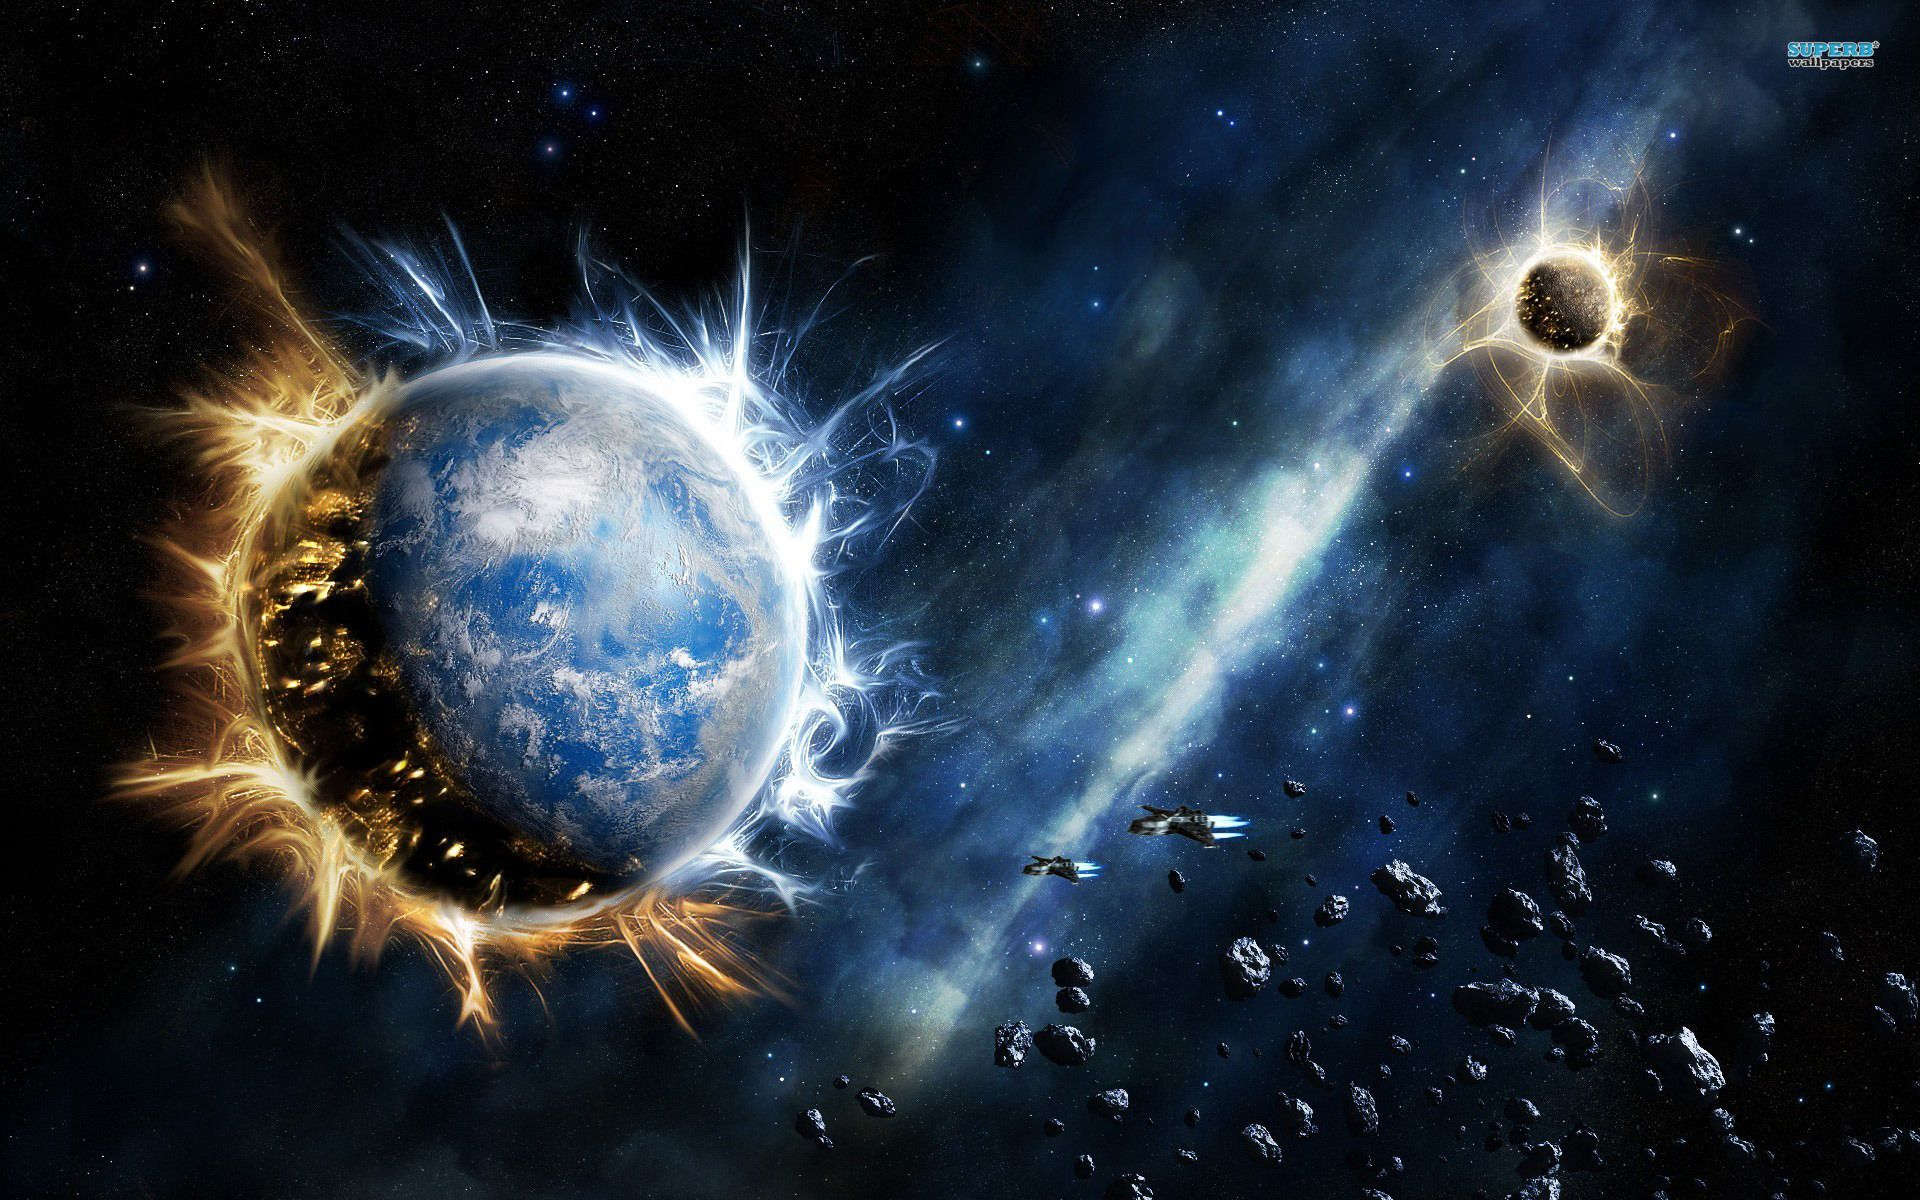 Supernova Wallpapers Space Fantasy Planets Wallpaper Space Art